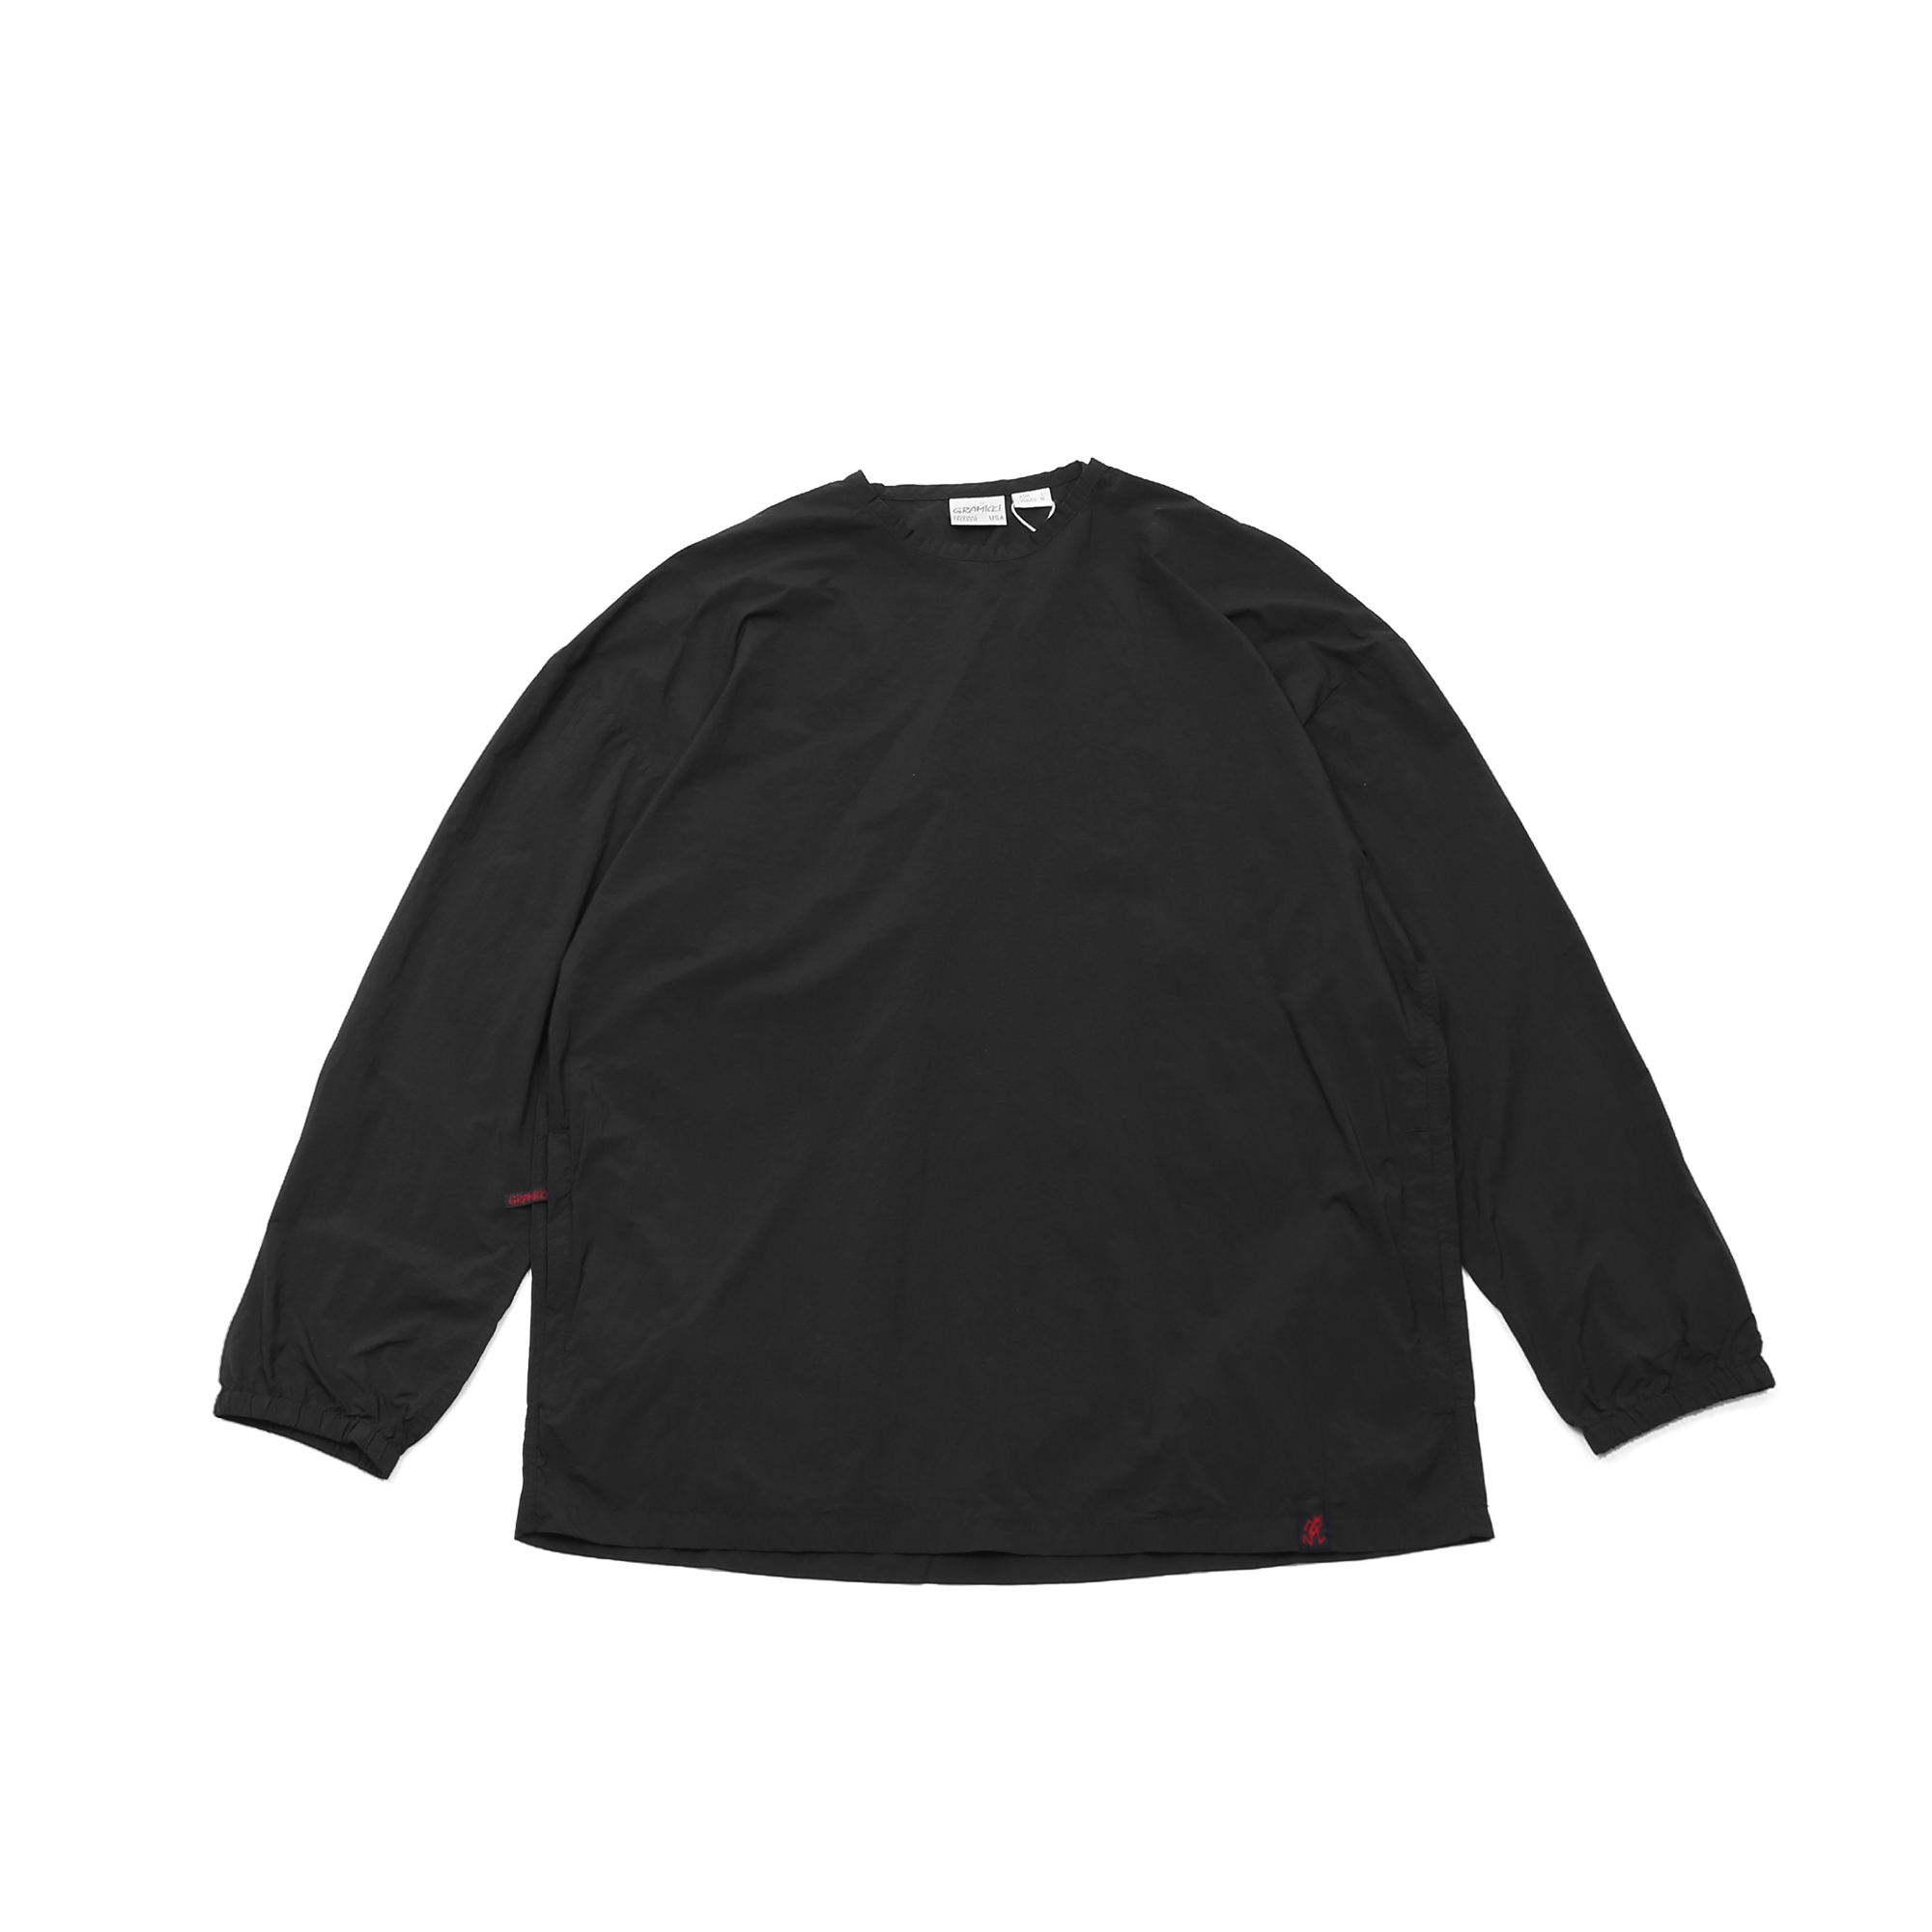 【GRAMICCI】PACKABLE CAMP L/S TEE 2053-KNJ